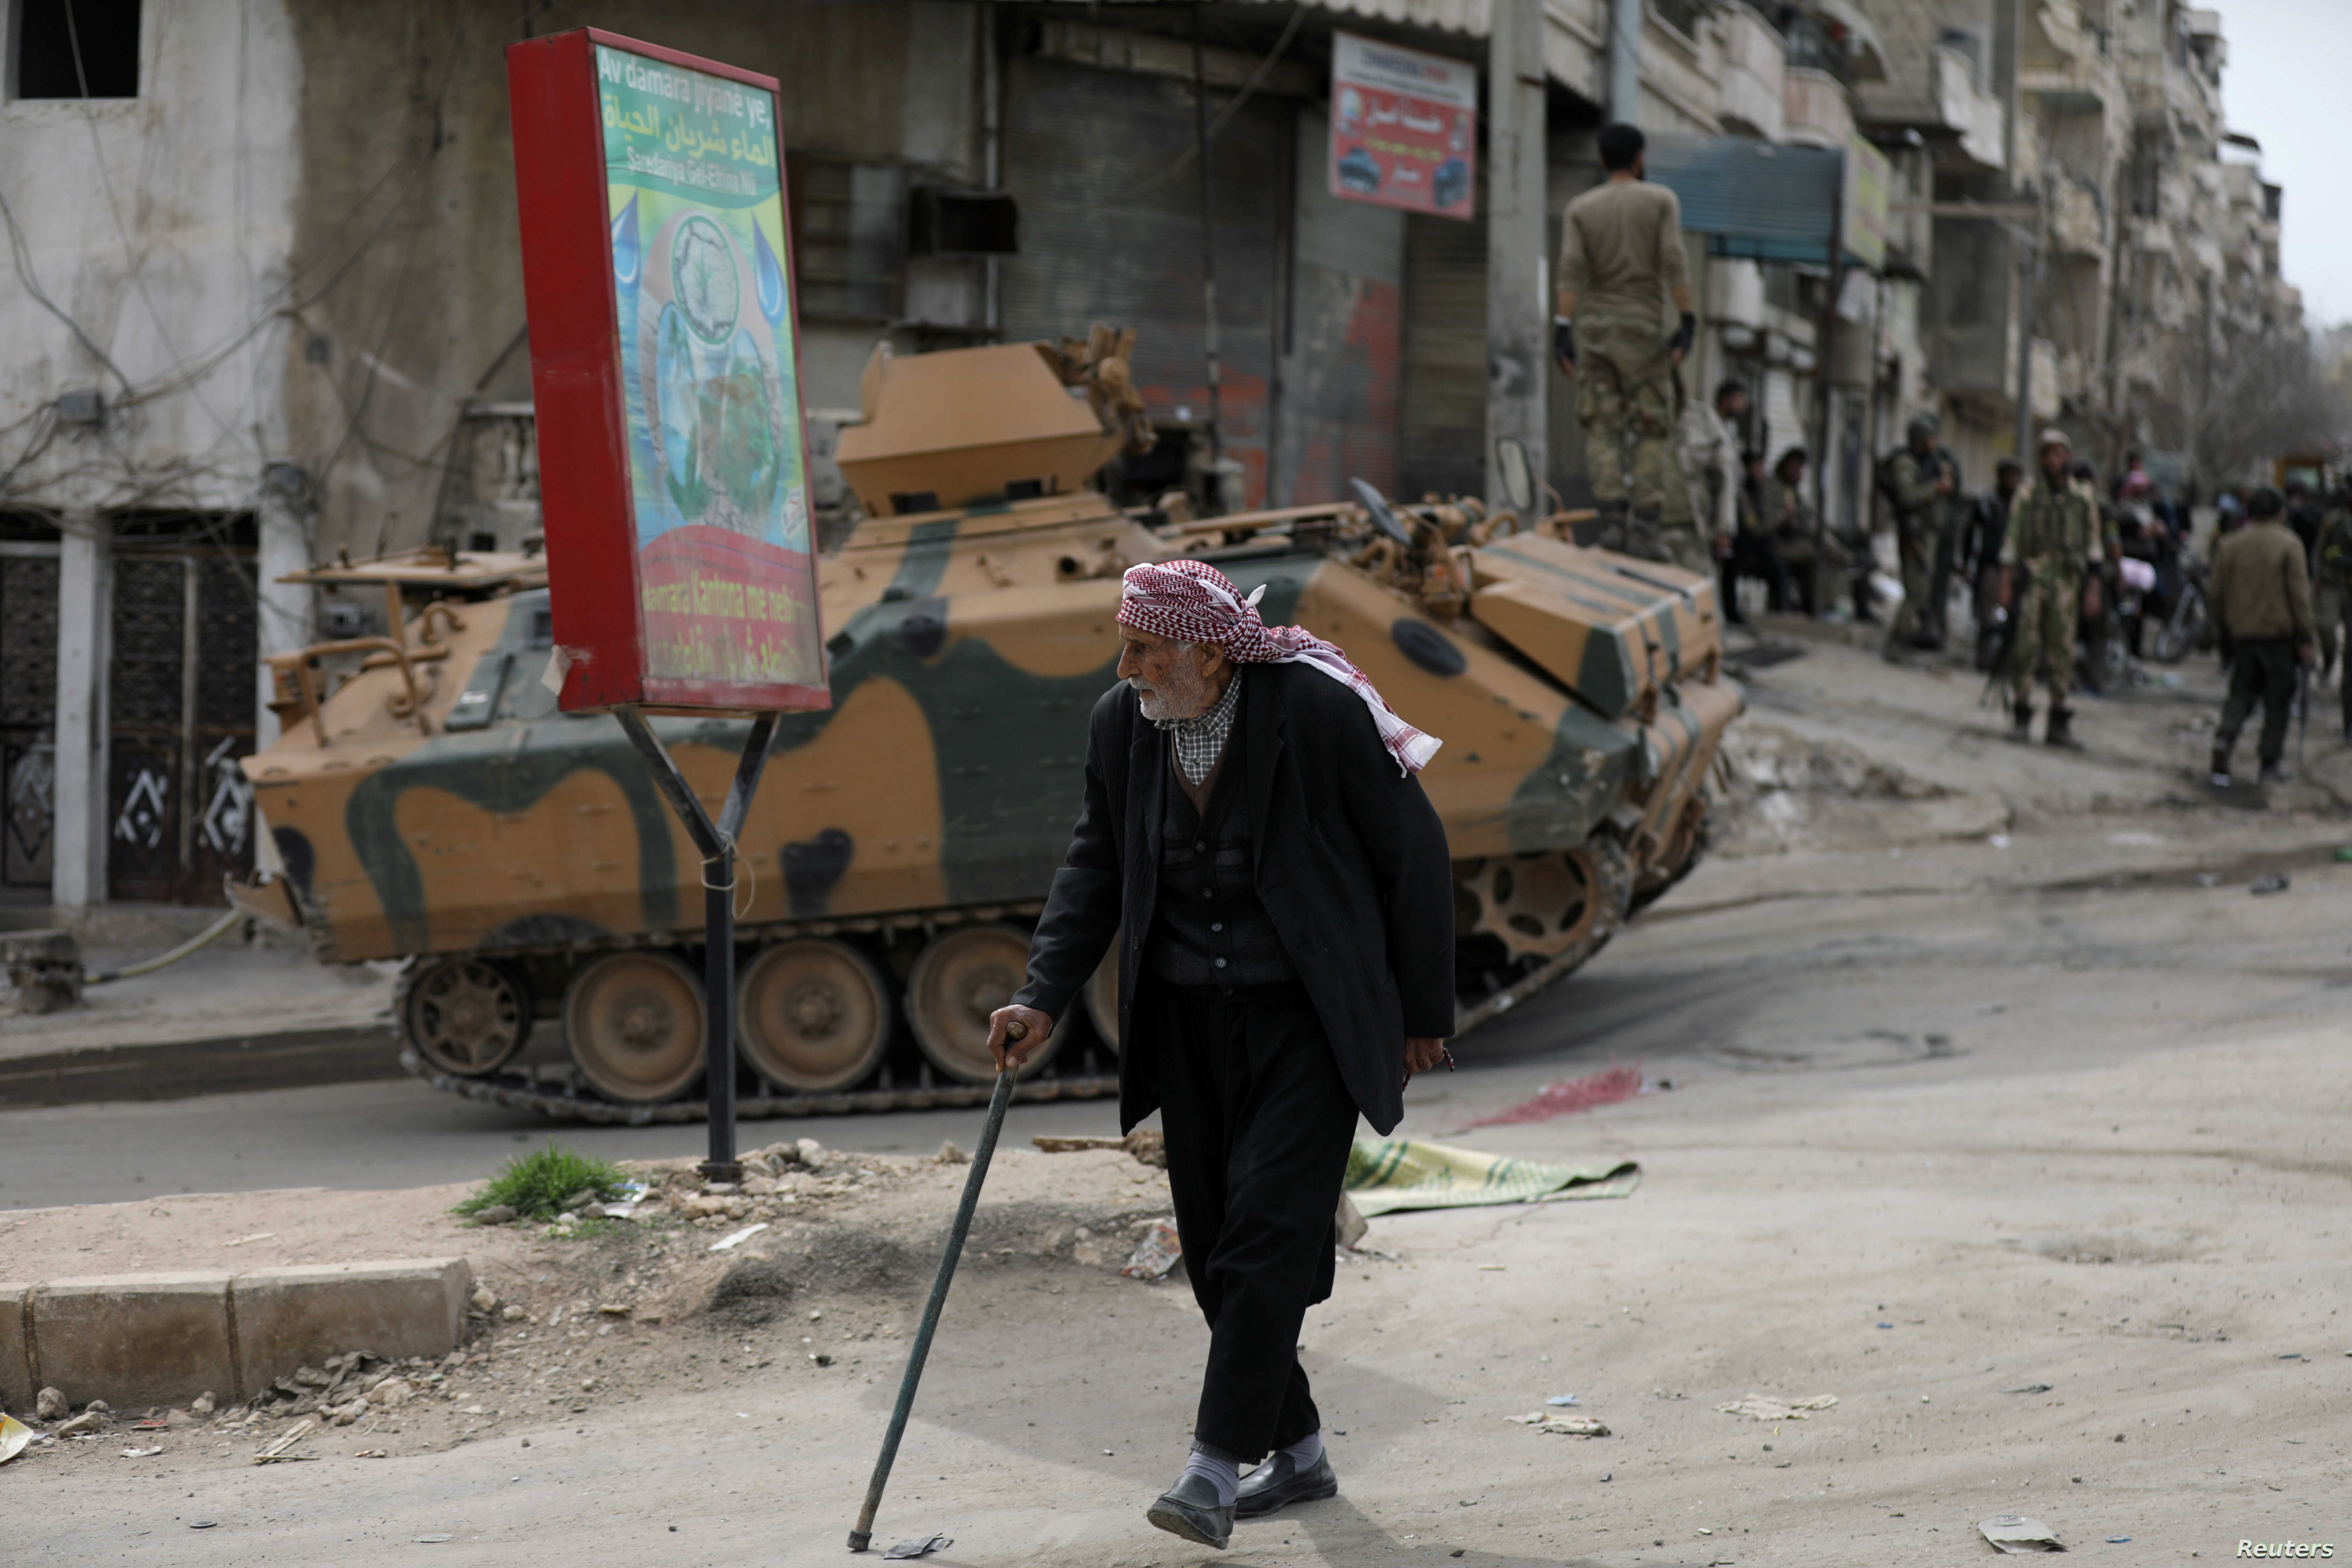 A Kurdish elderly man walks with a cane in Afrin, Syria, March 19, 2018.